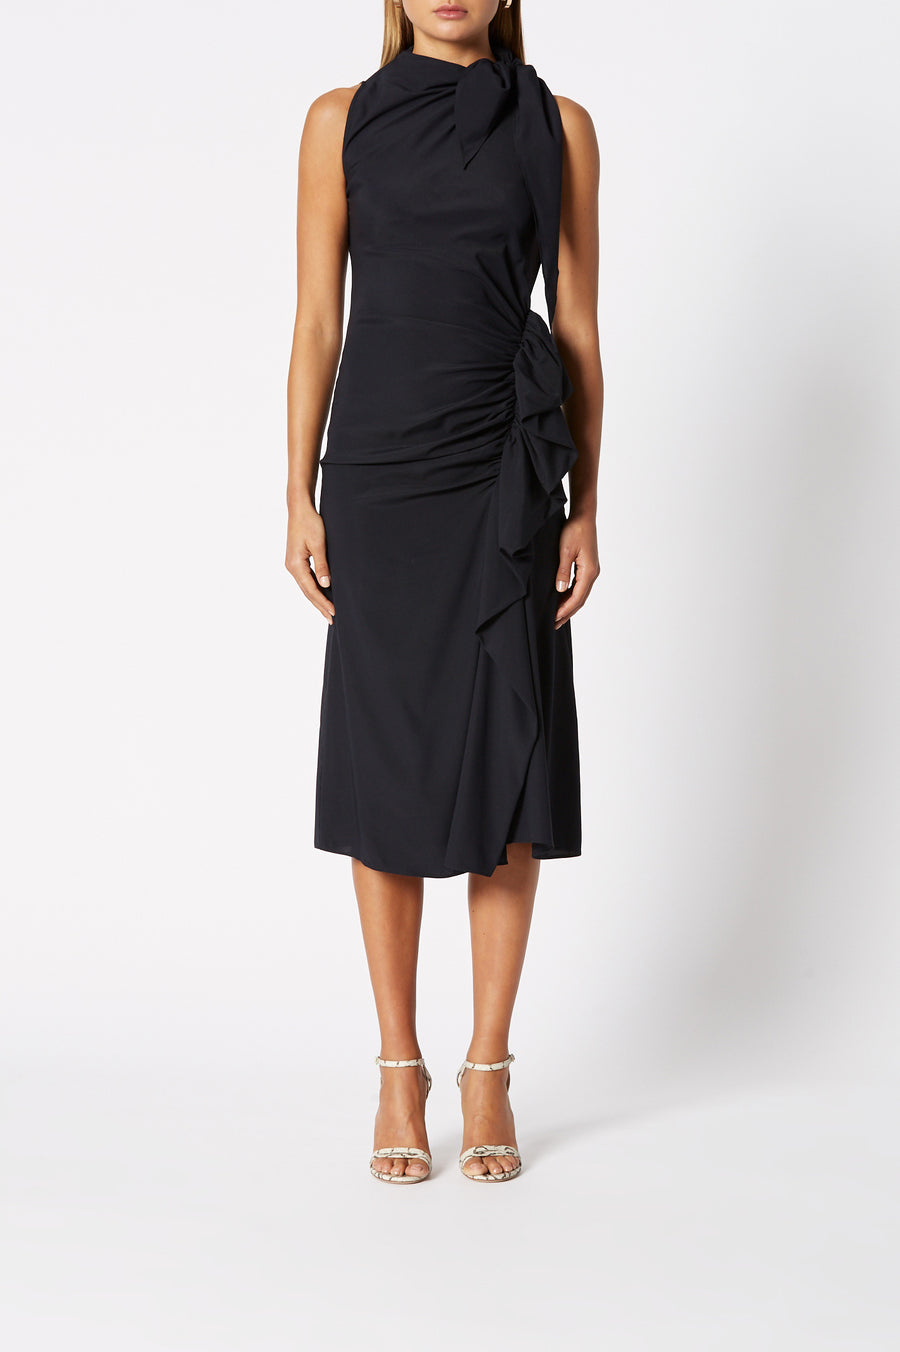 Silk Ruffle Dress Navy, below the knee length, high neckline, ruched detailing